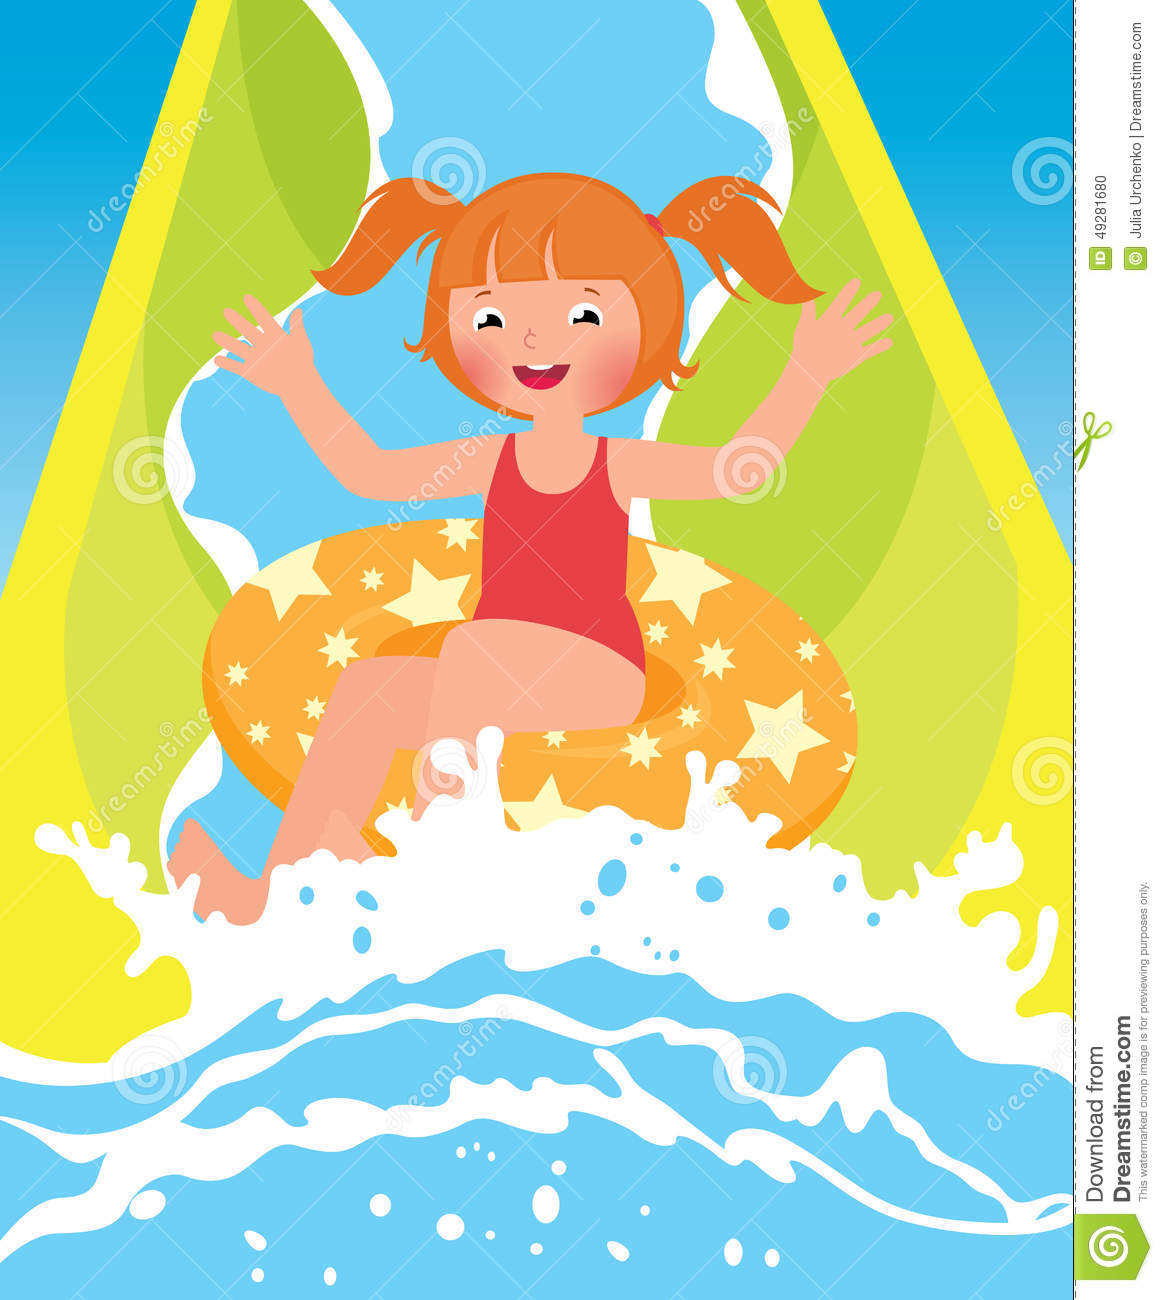 in water park in summer - Water Park Clipart